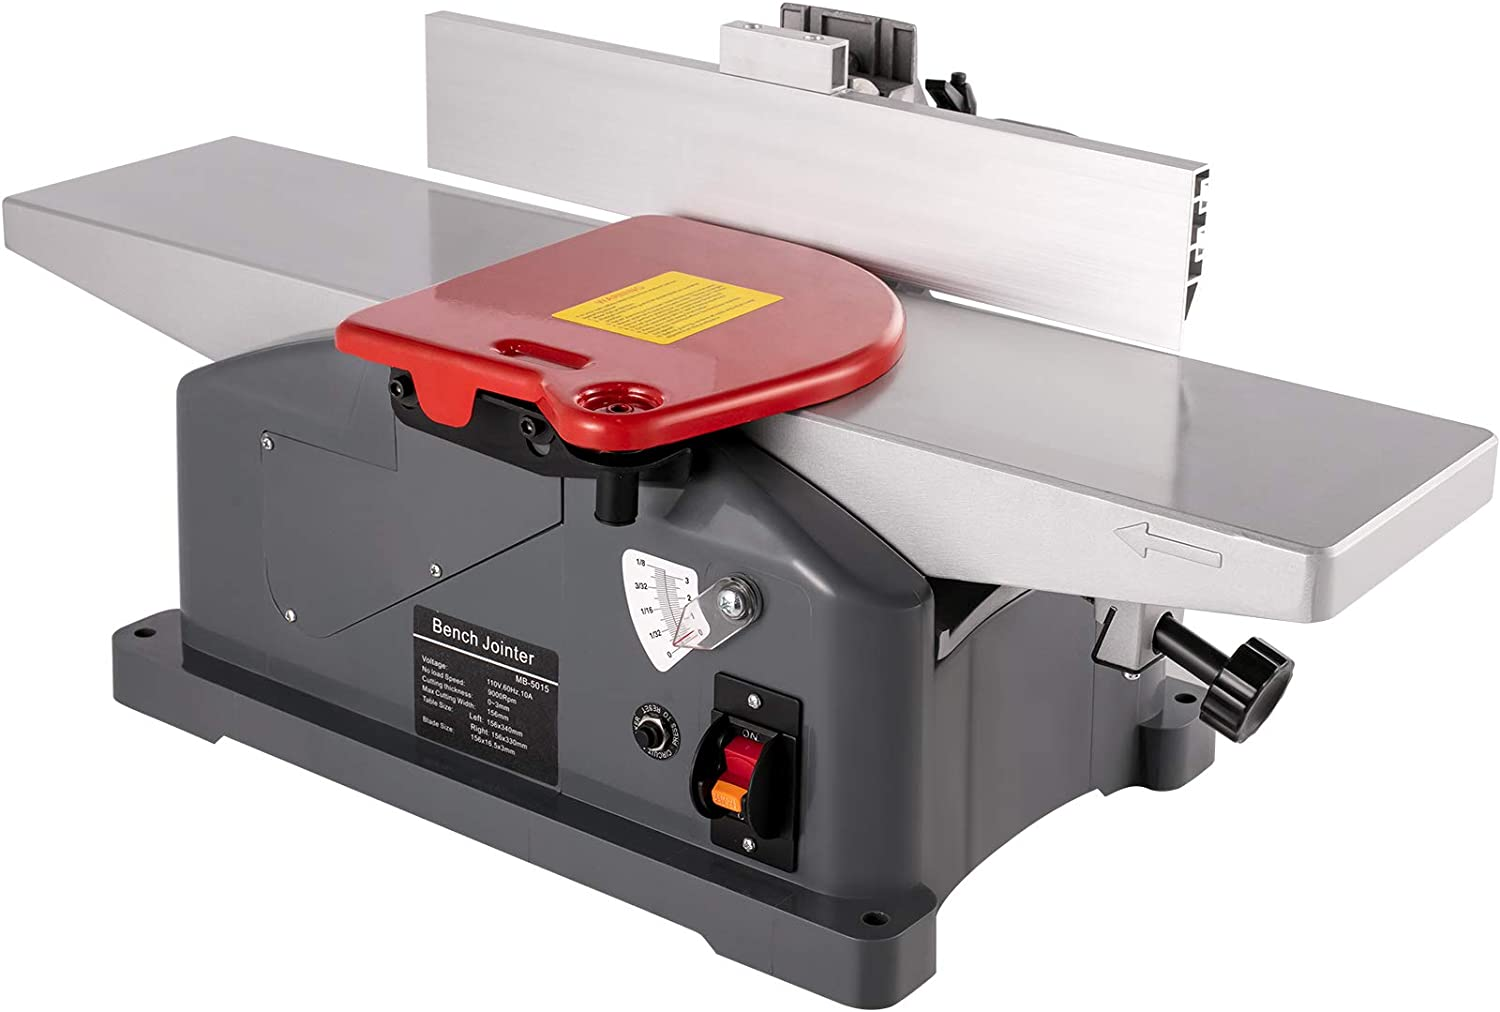 VEVOR 70% OFF Outlet Jointers Woodworking 6 Inch min Benchtop 9000 Jointer Overseas parallel import regular item RPM